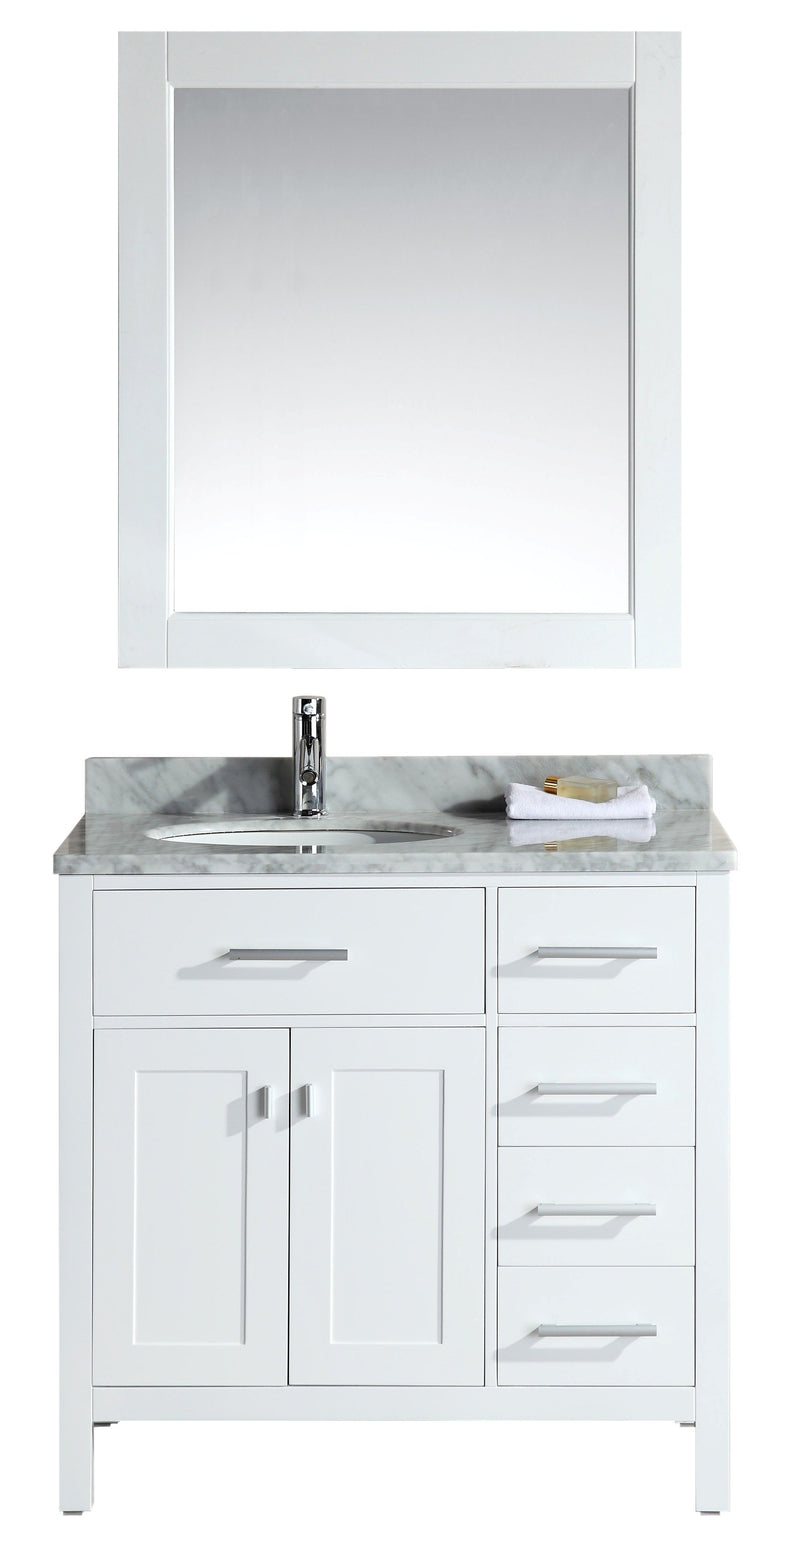 "Design Element London 36"" Single Sink Vanity Set in White Finish with Drawers on the Right"